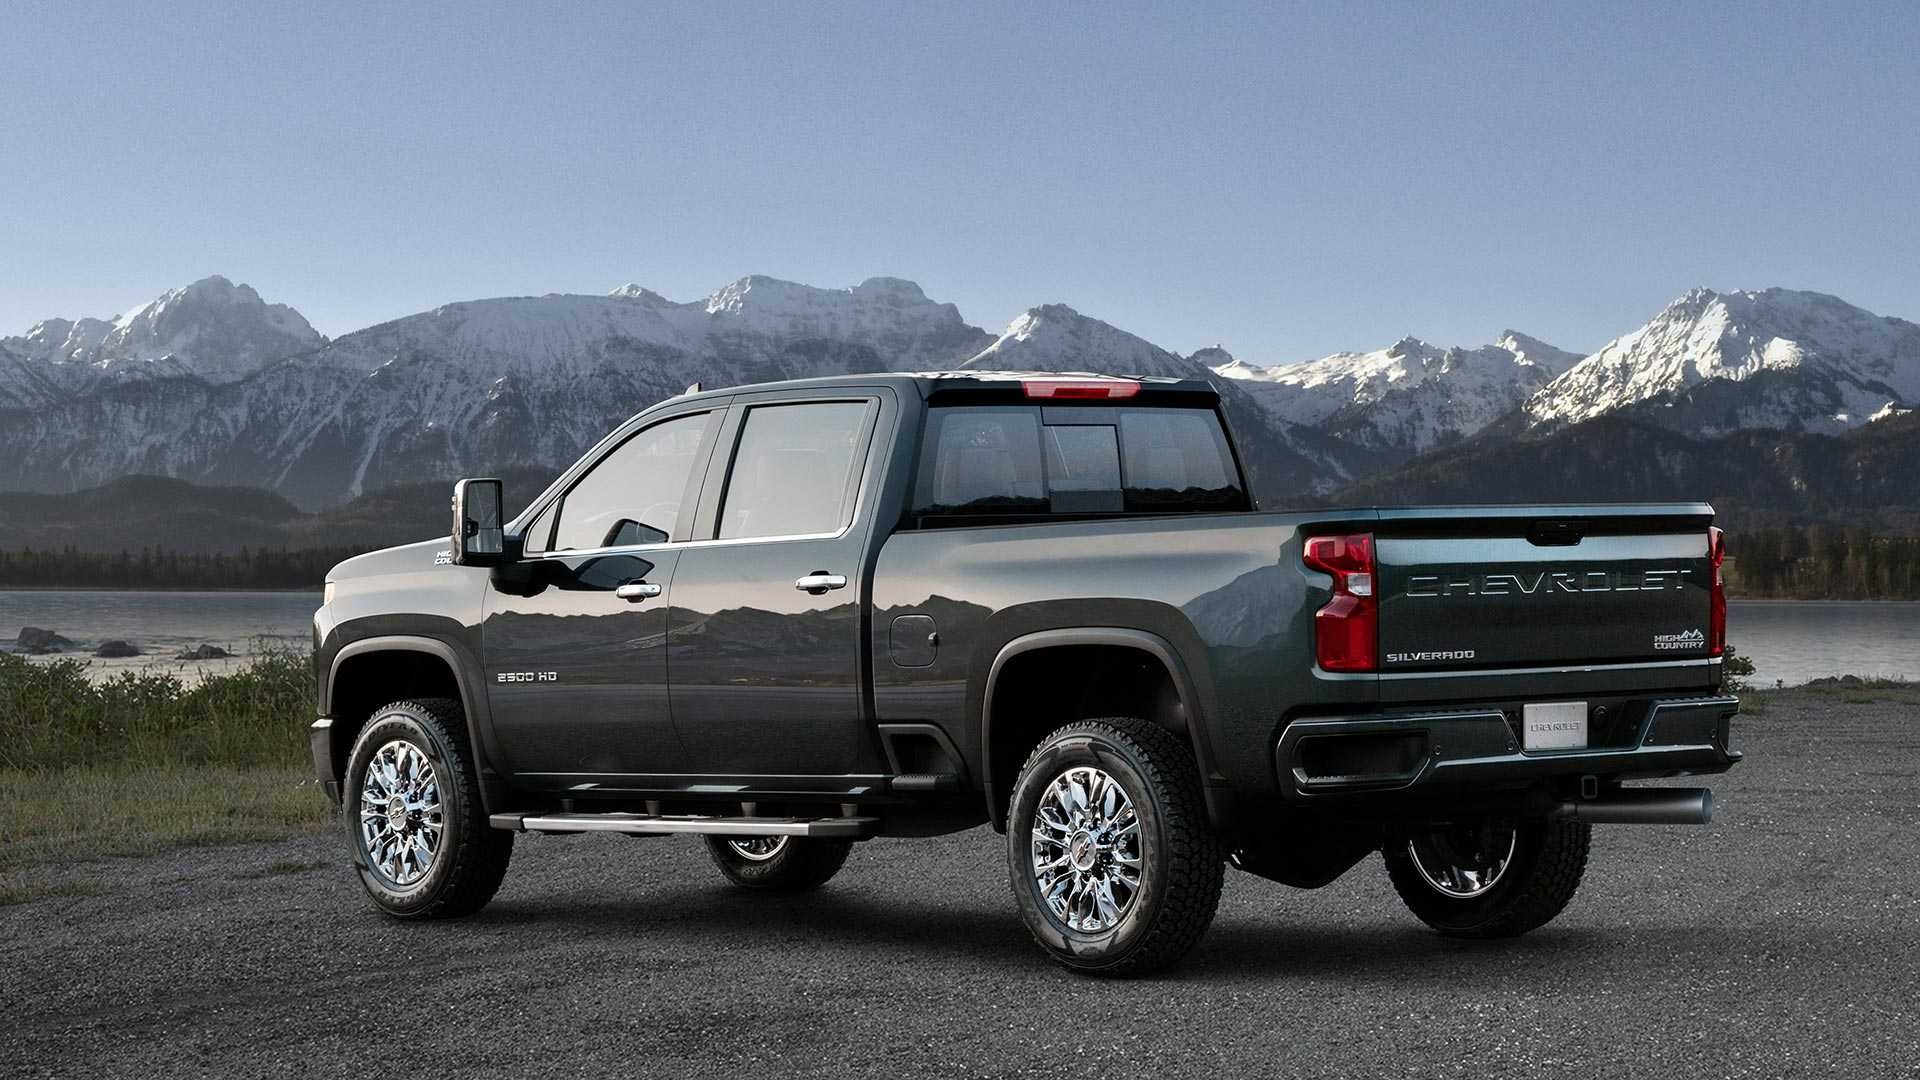 2020 GMC Sierra HD Denali Teased, Expected To Debut In ...